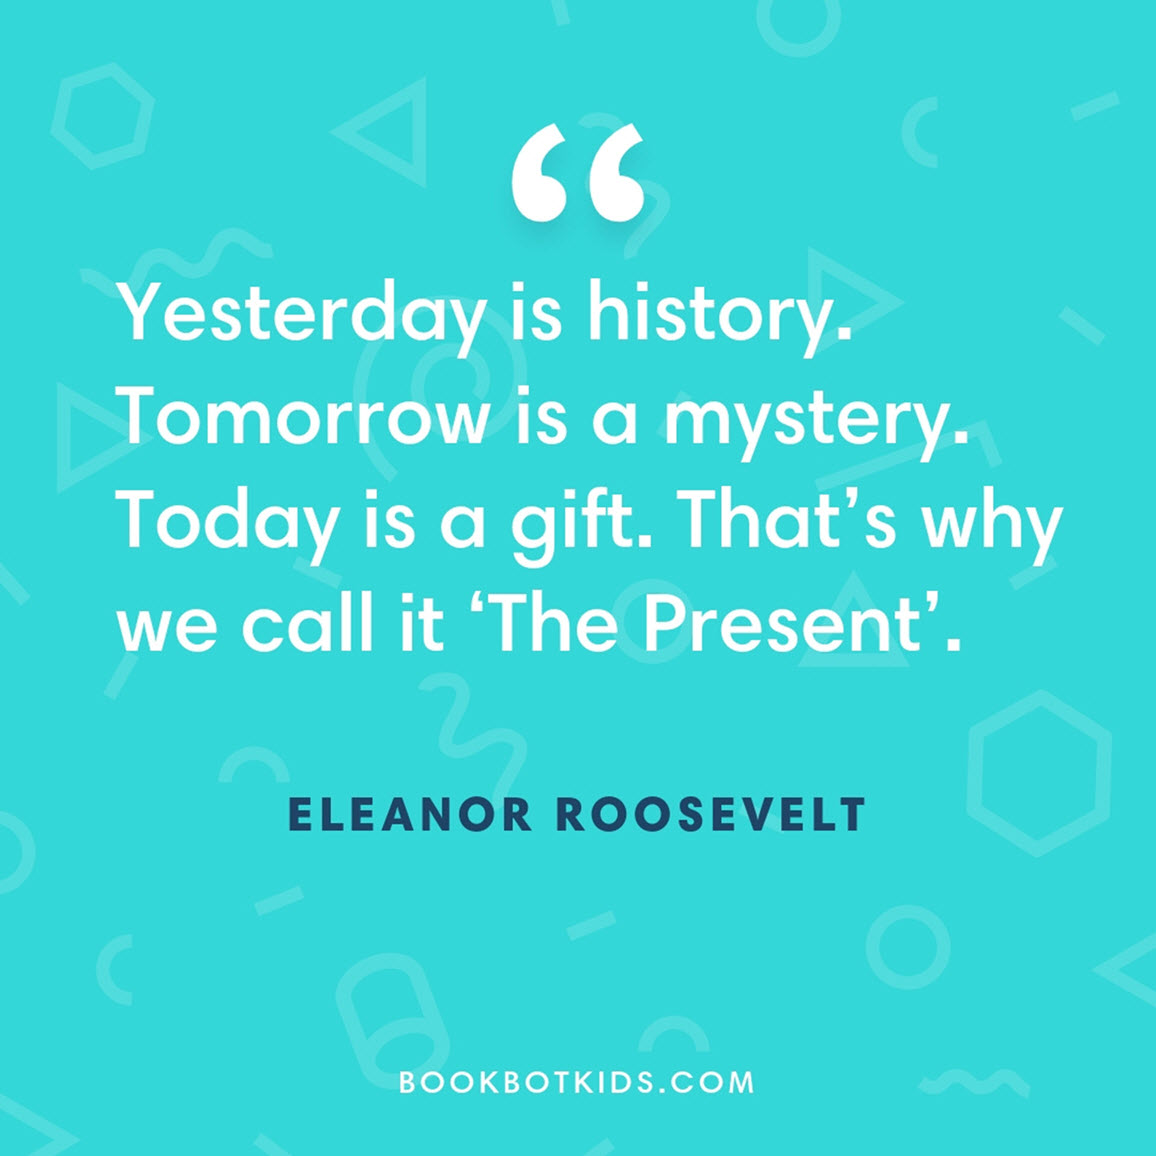 Yesterday is history. Tomorrow is a mystery. Today is a gift. That's why we call it 'The Present'. – Eleanor Roosevelt